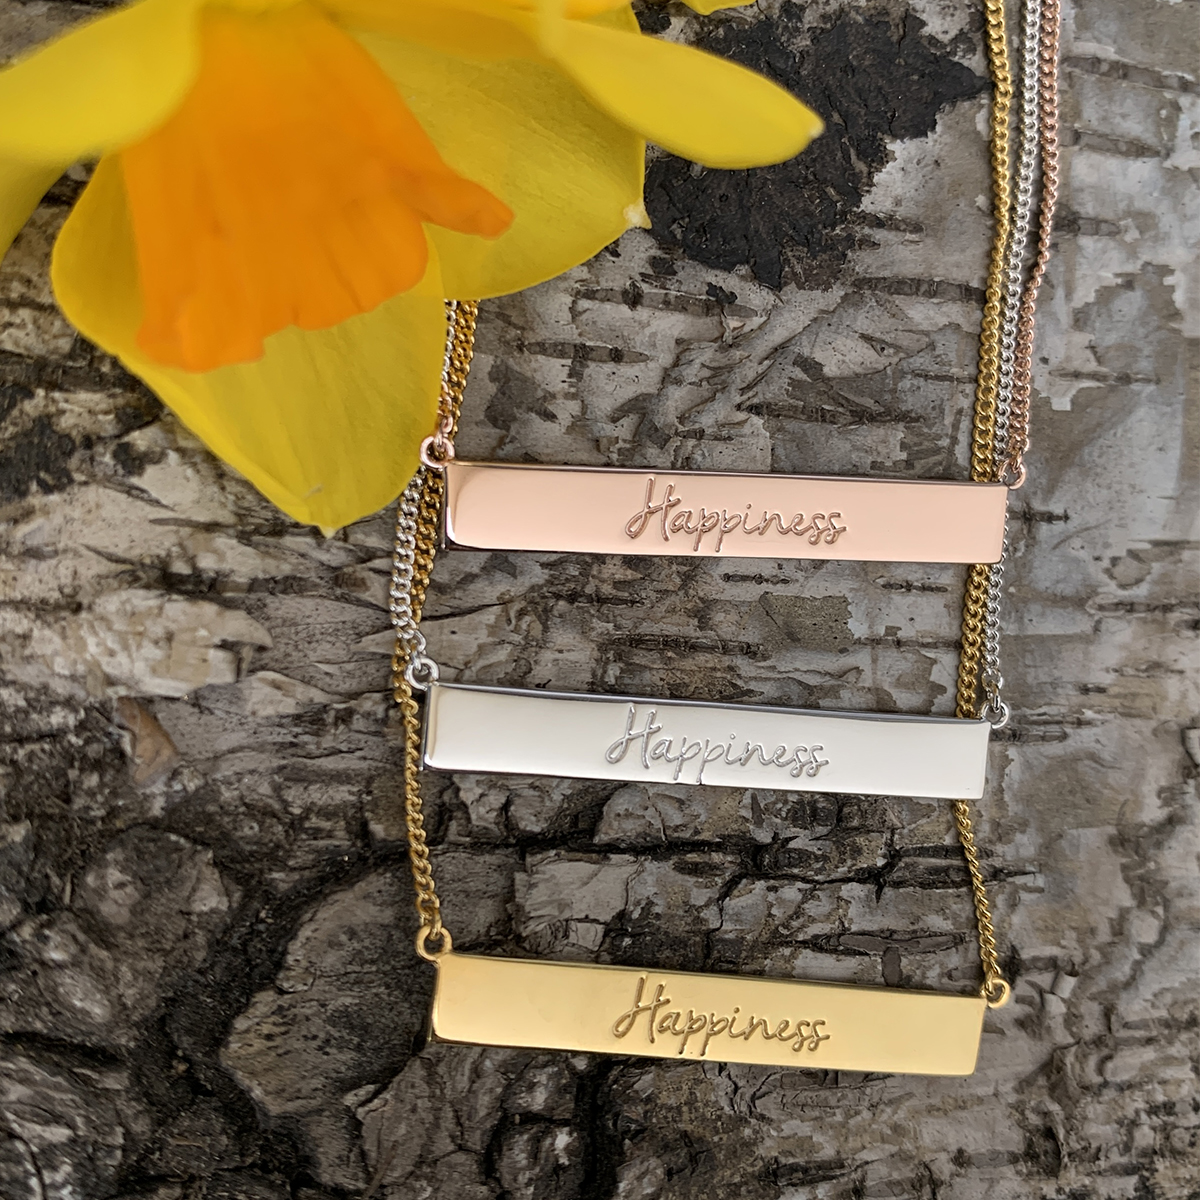 Happiness Necklaces Photography